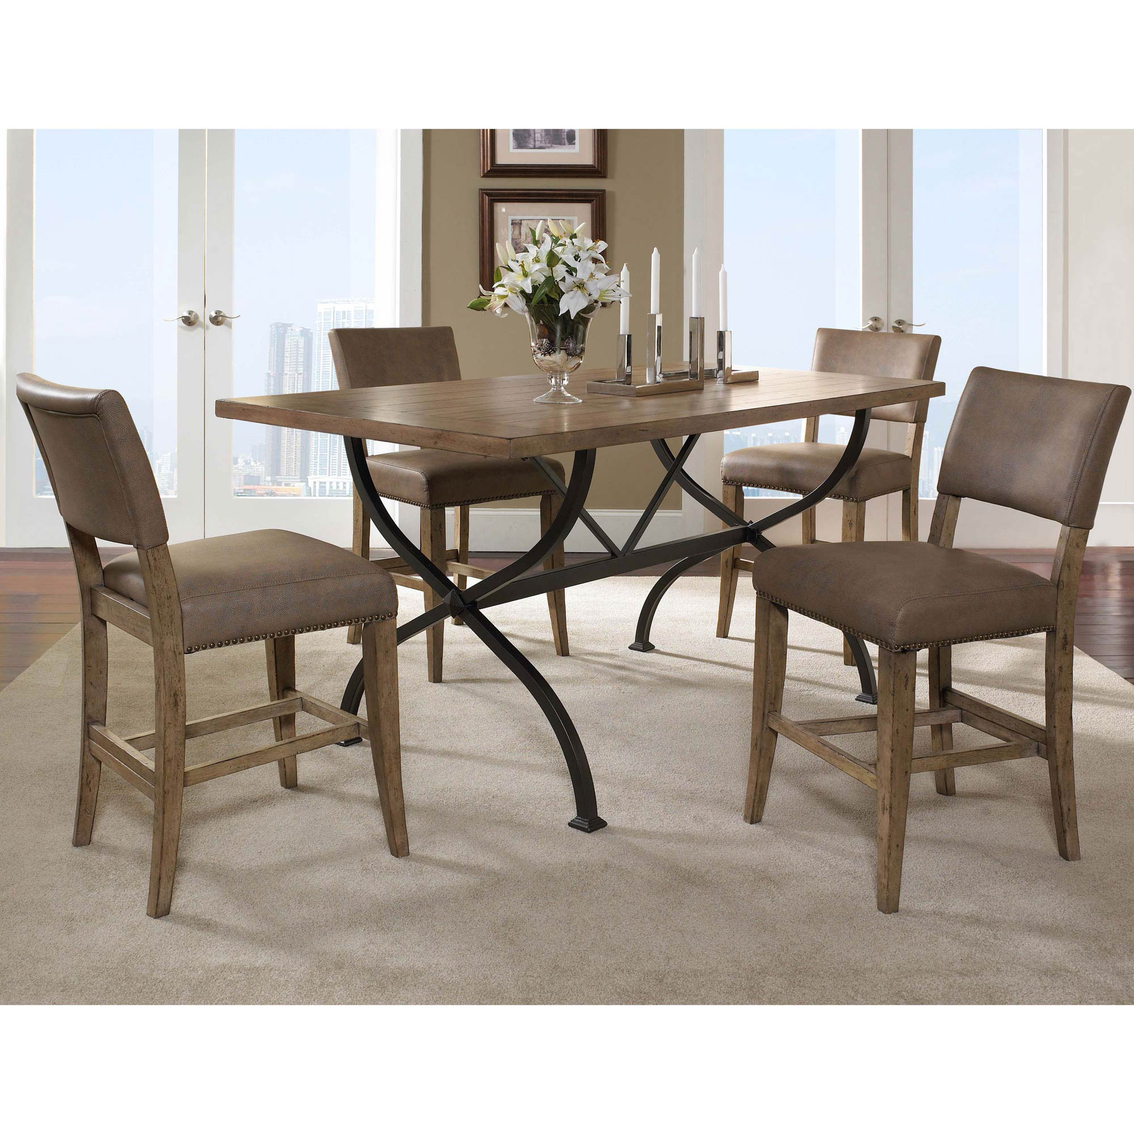 Hillsdale Charleston 5 Pc. Rectangle Counter Height Dining Set